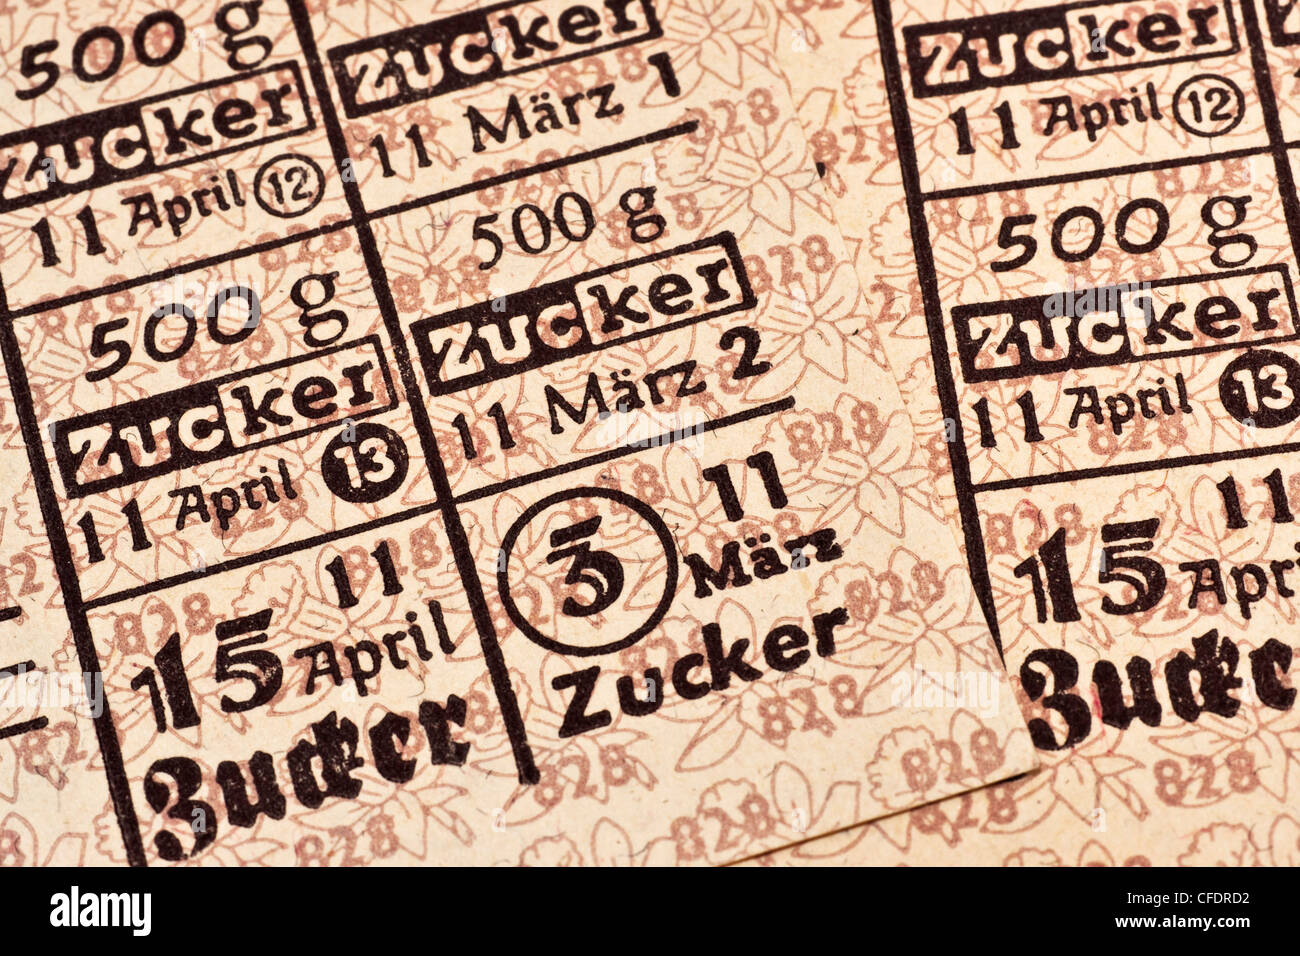 Detail photo of food ration cards, Lower Saxony, March to April 1950, Federal Republic of Germany - Stock Image